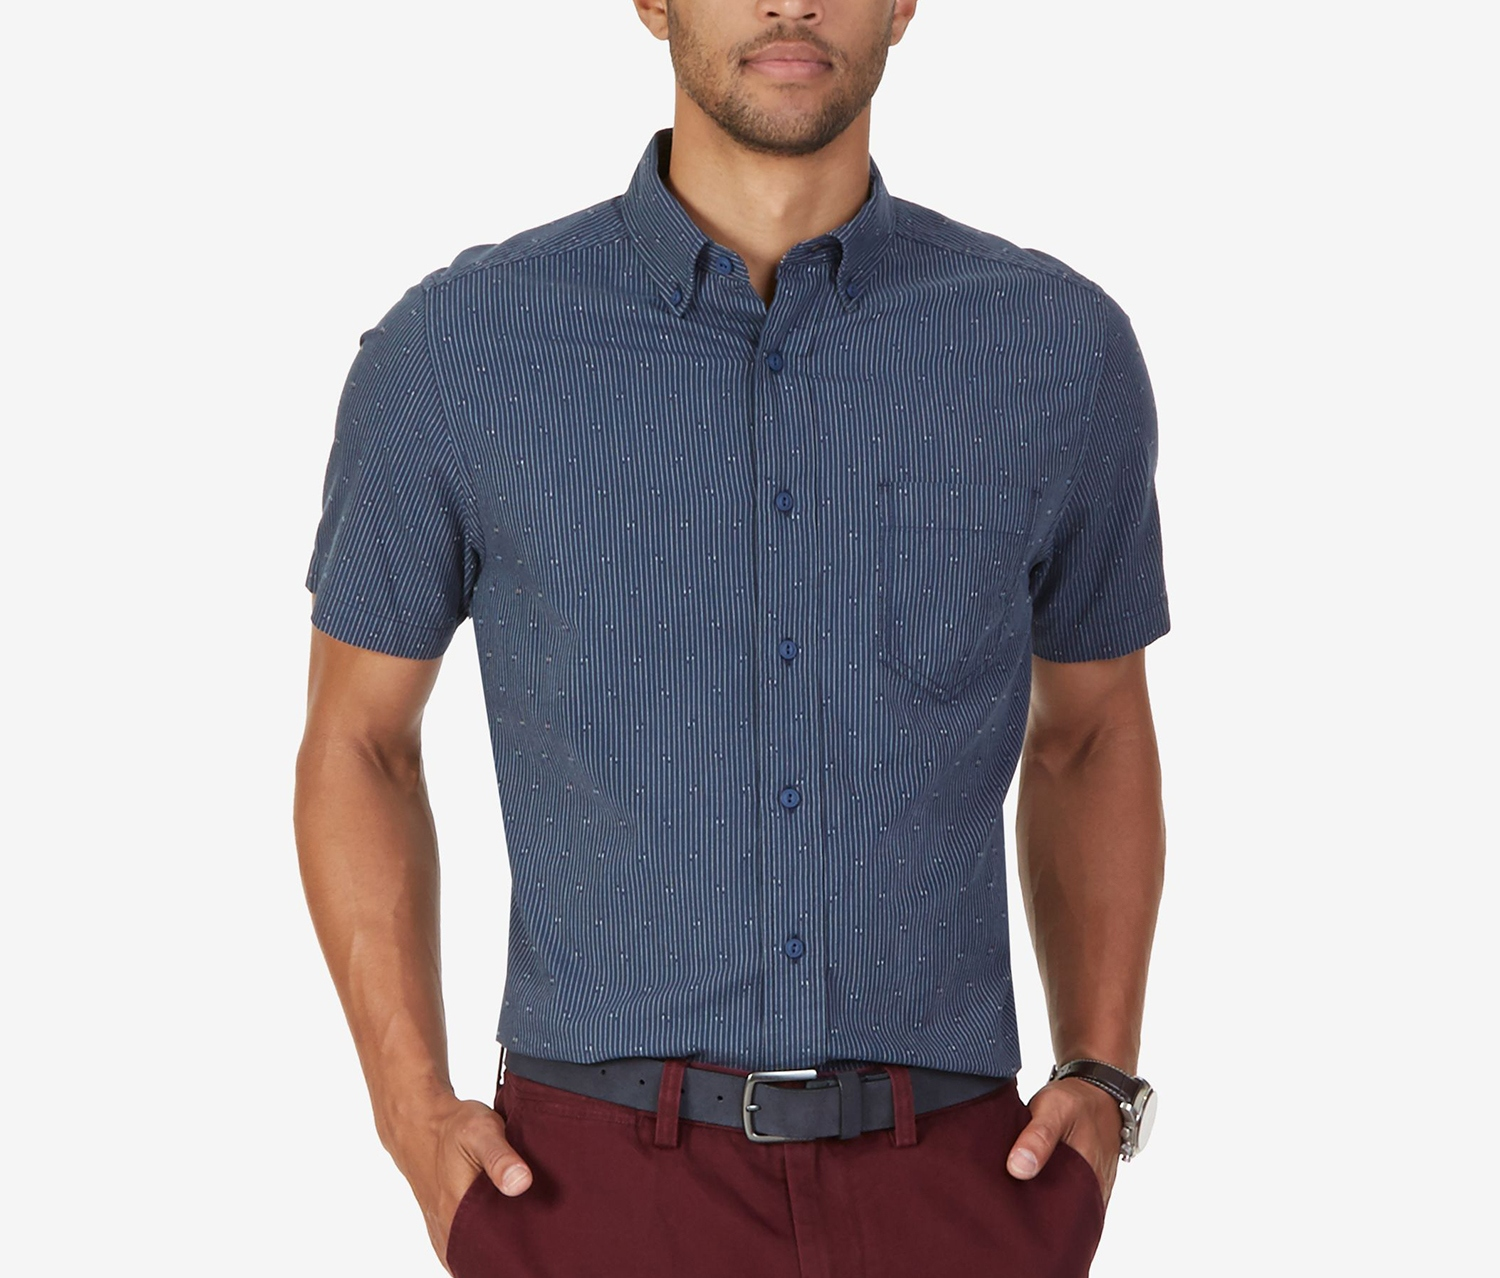 153bf879 Shop nautica Nautica Mens Dobby Short-Sleeve Shirt, Mood Indigo for ...